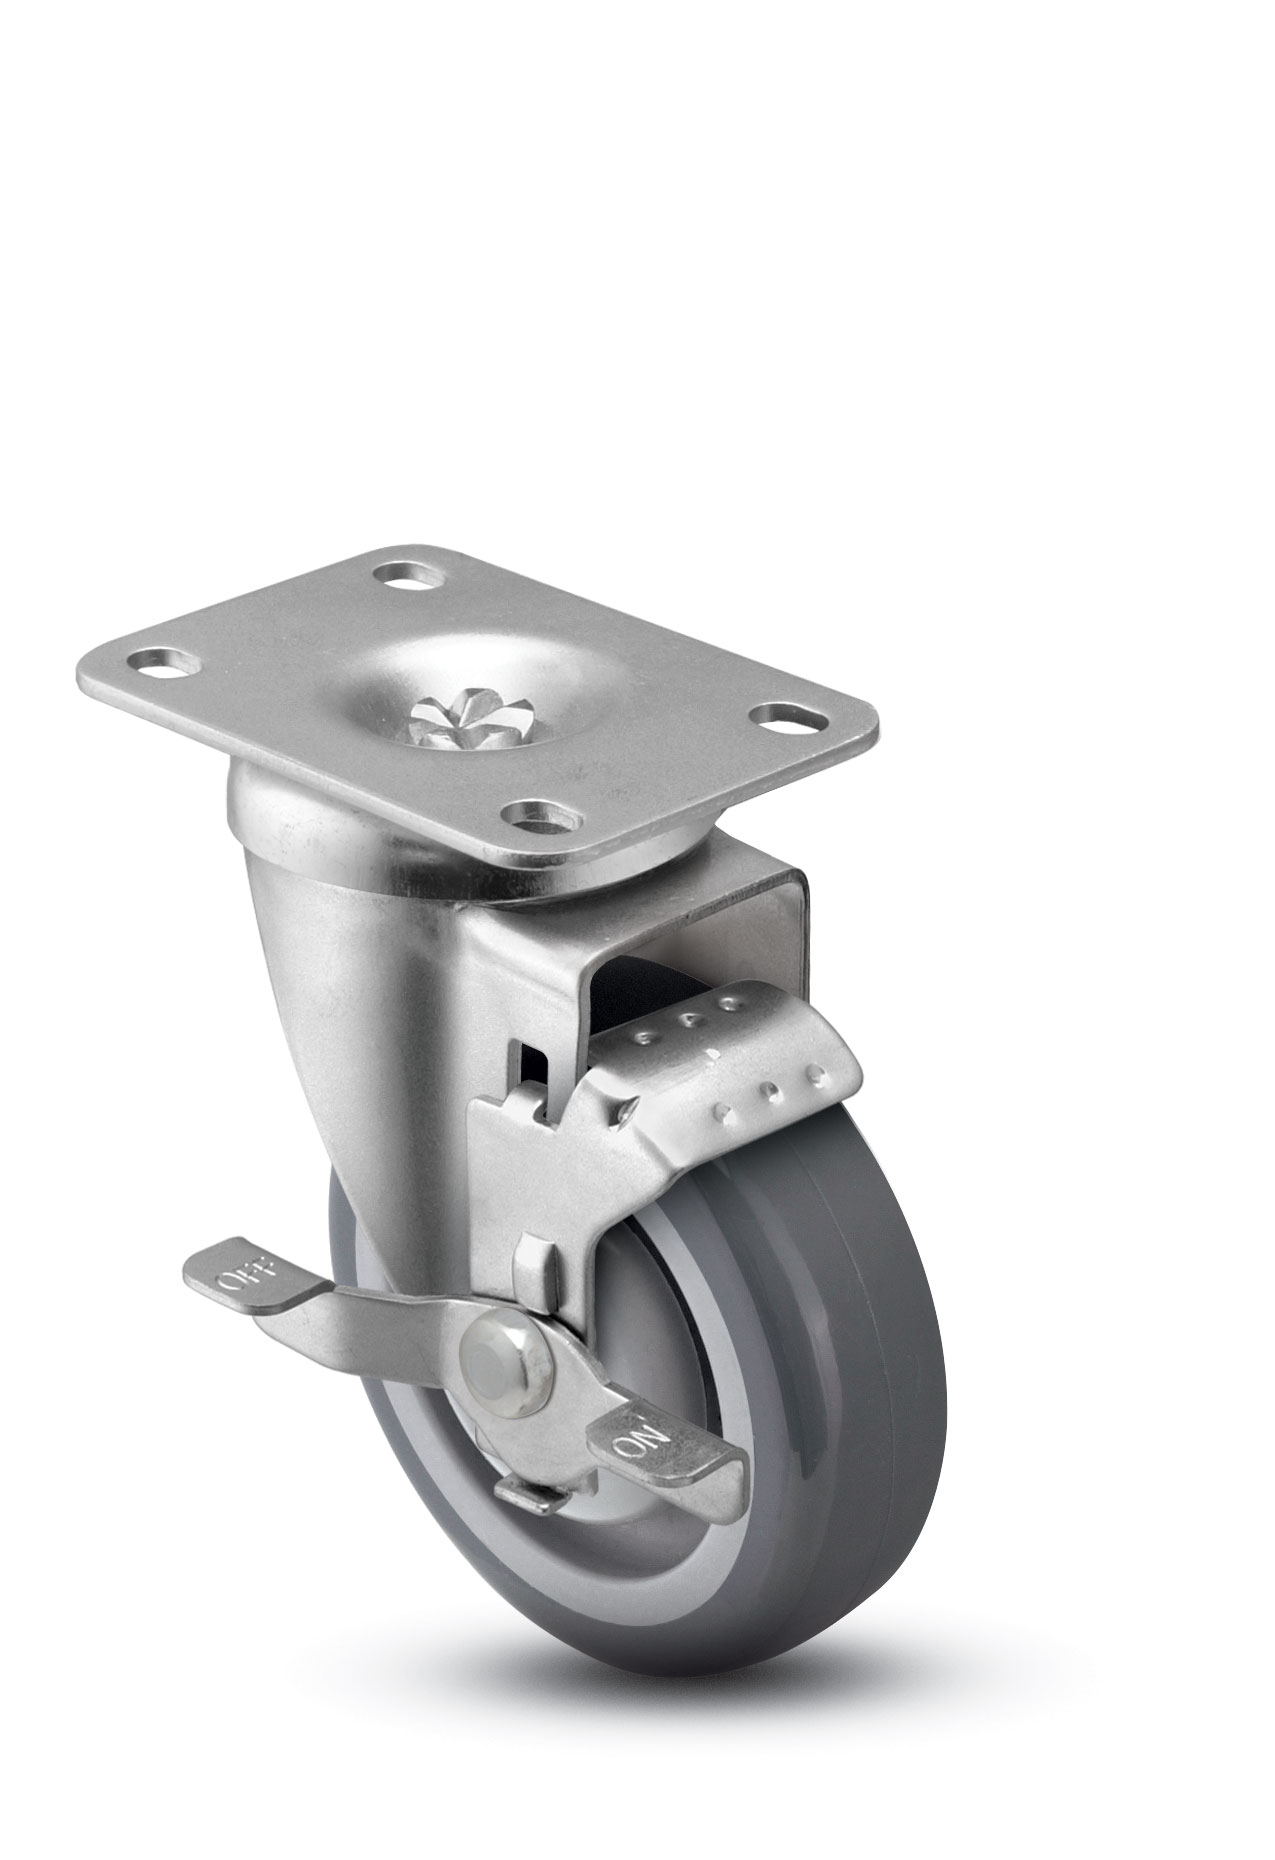 Total Locking Casters Locking Chair Casters